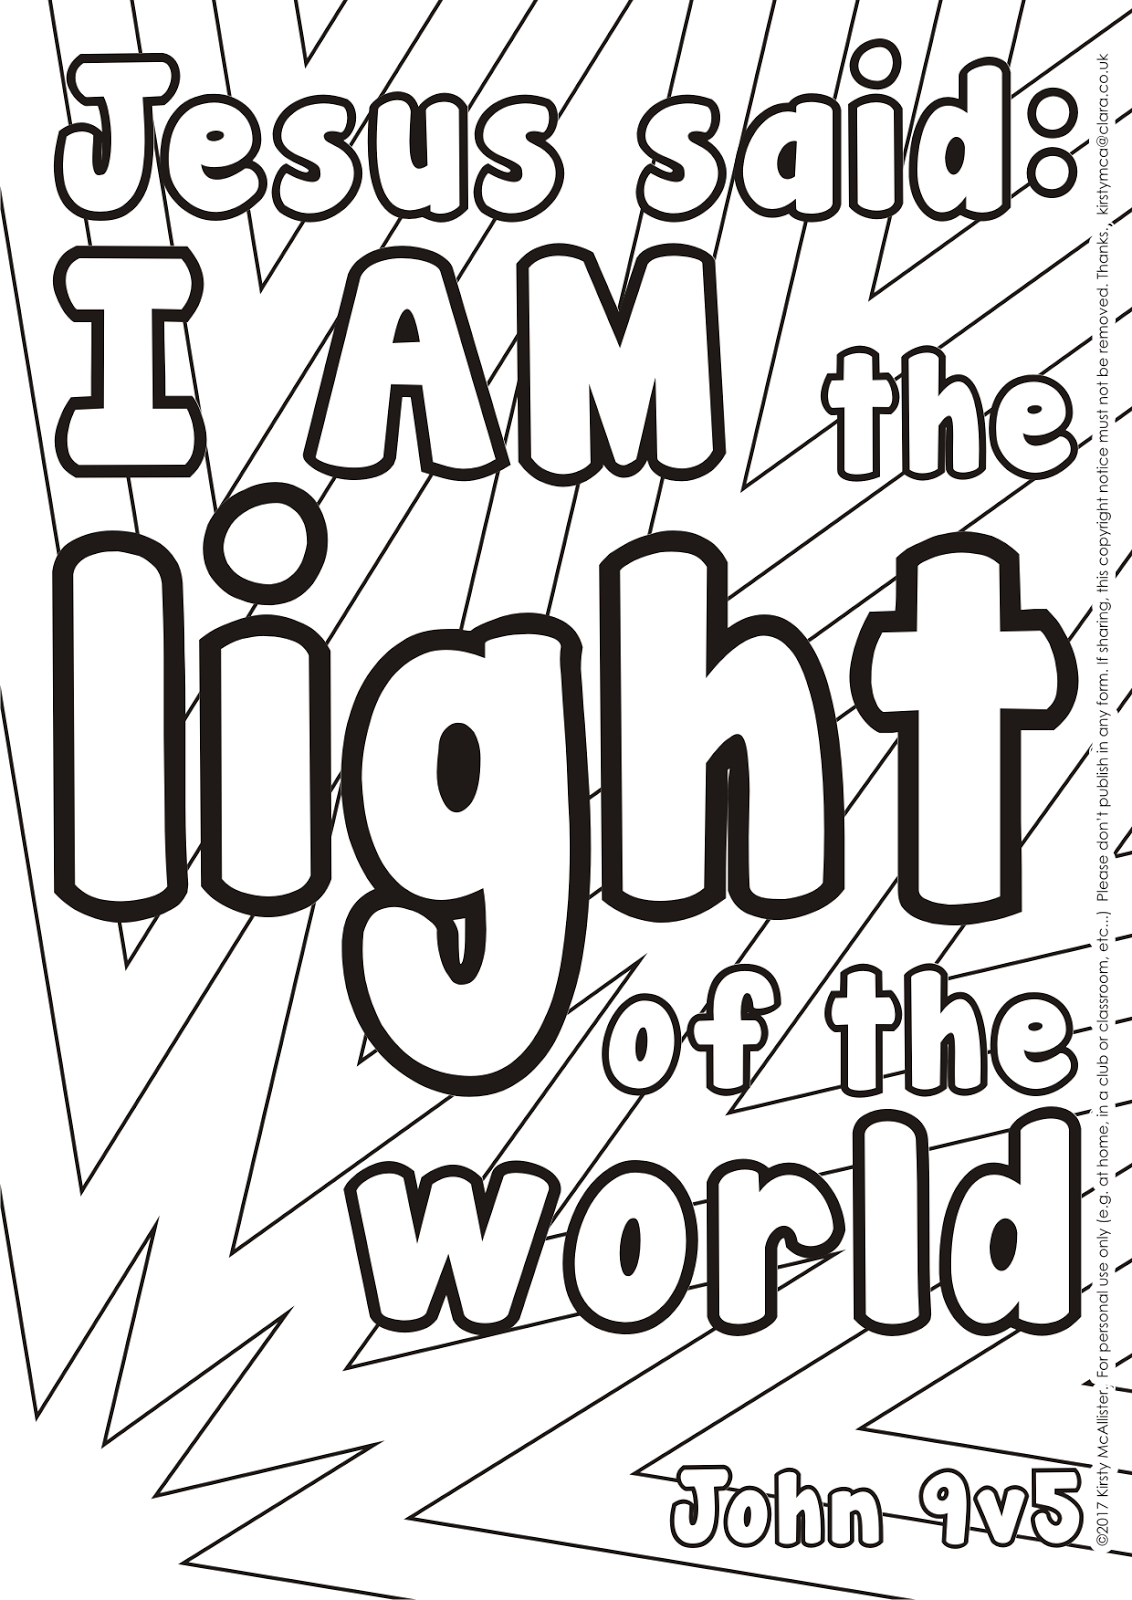 Jesus Said I Am The Light Of The World Colouring Picture Sunday School Coloring Pages Light Of The World Bible Lessons For Kids